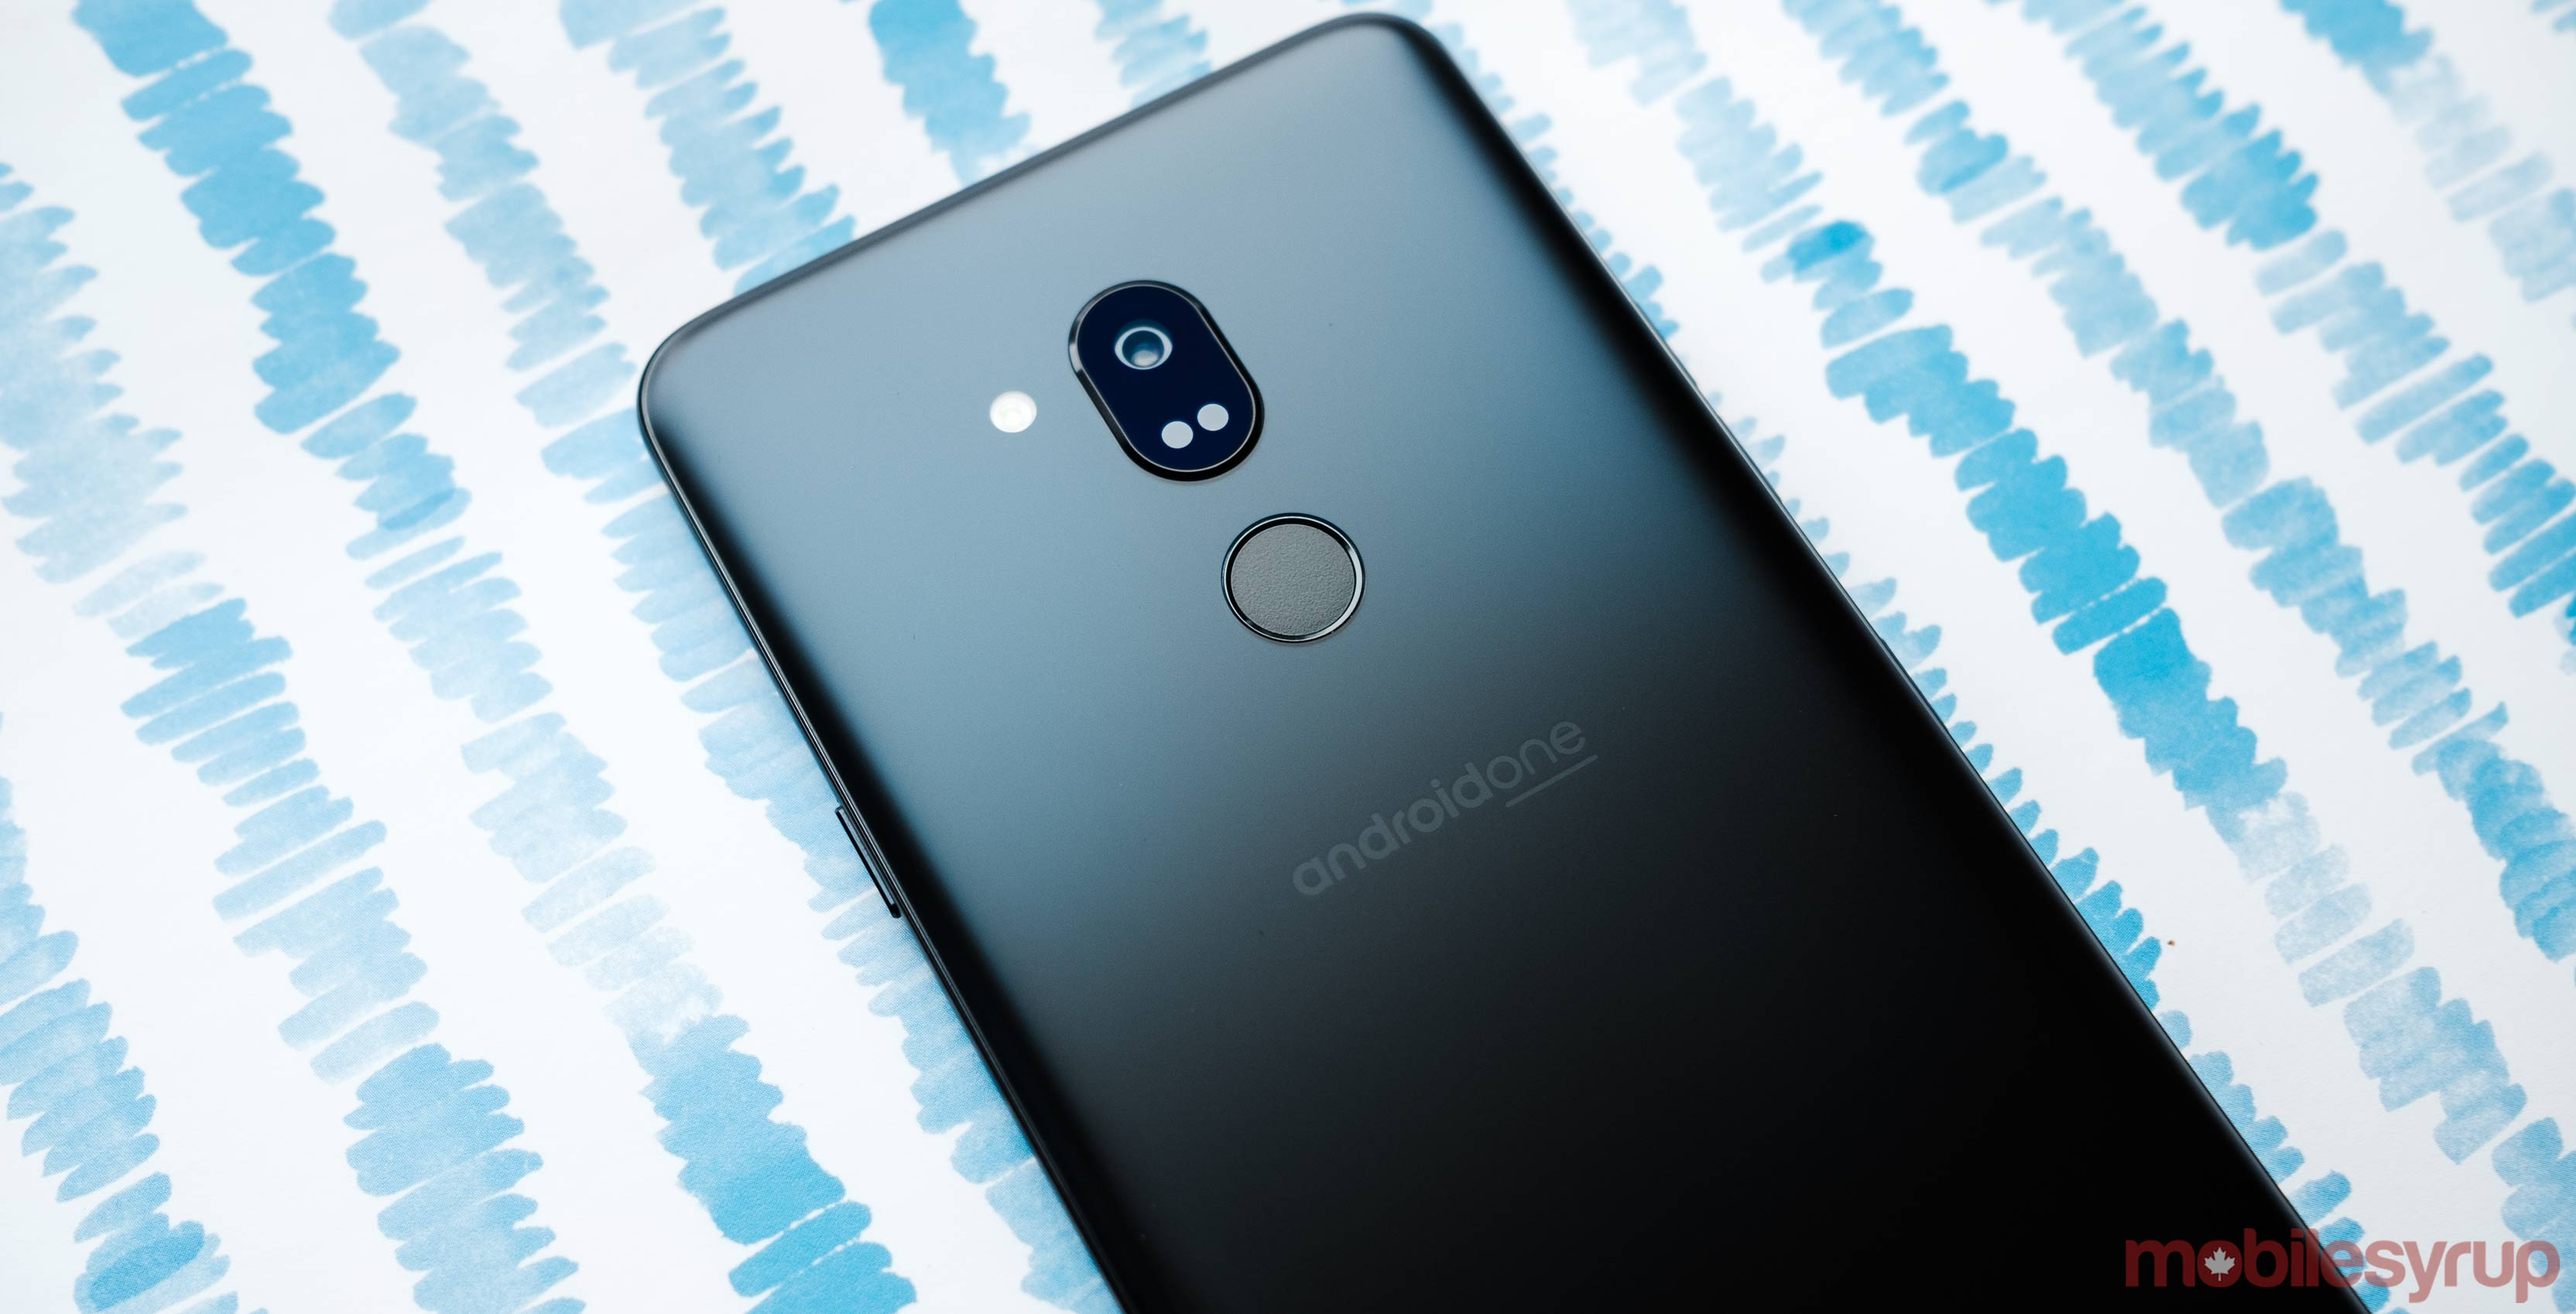 The LG G7 One is among the first Android One devices to come to Canada